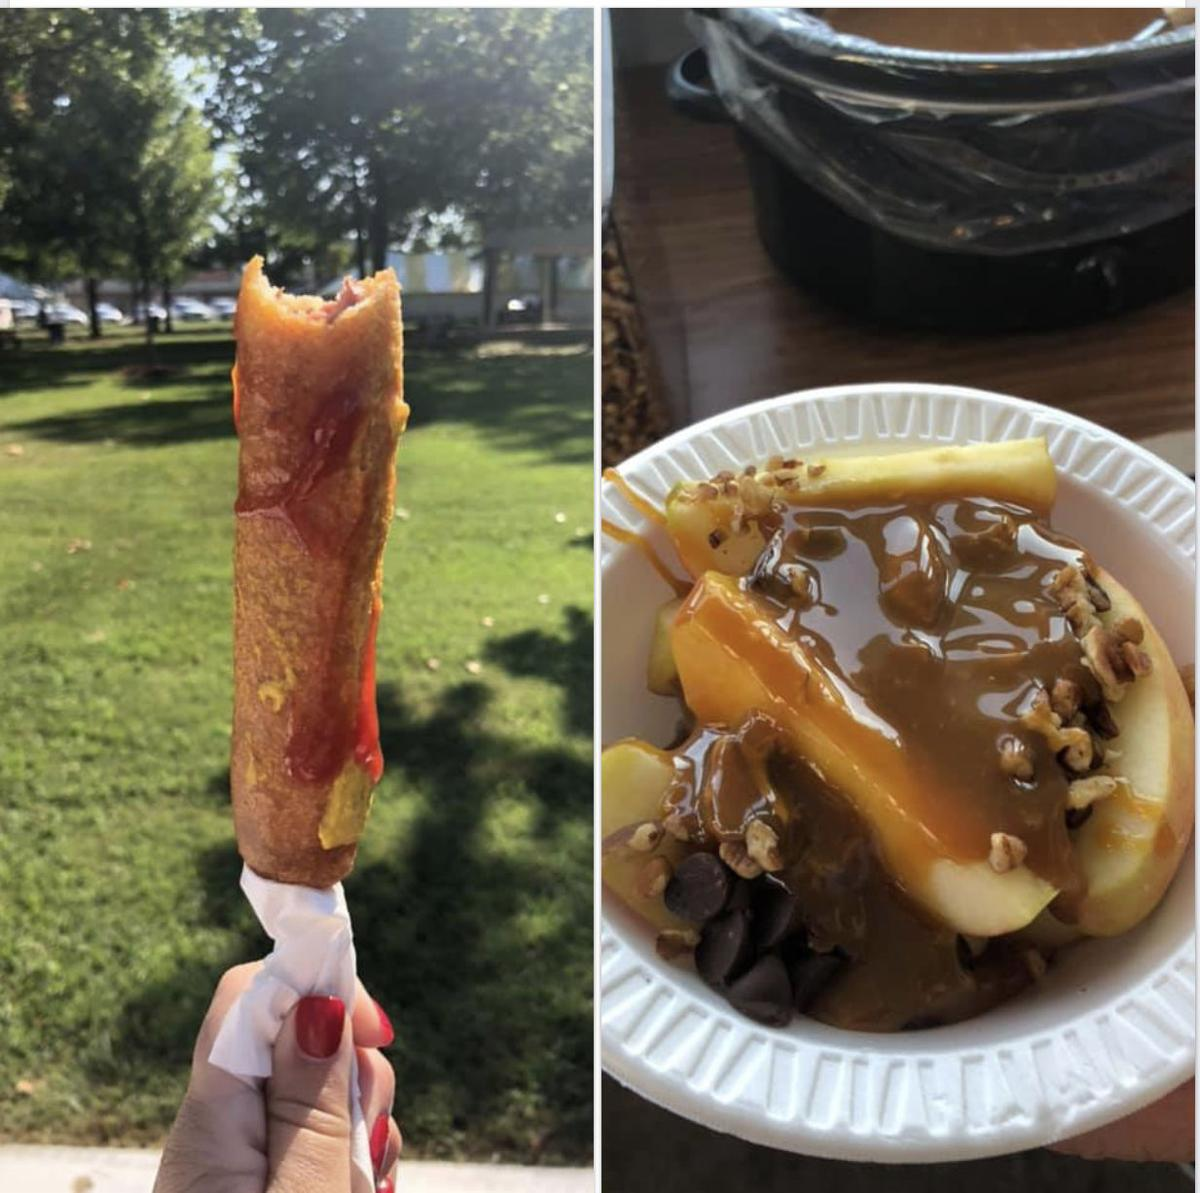 - Smoked pork sandwich, corndogs and loaded caramel apples at 2019 Apple Festival